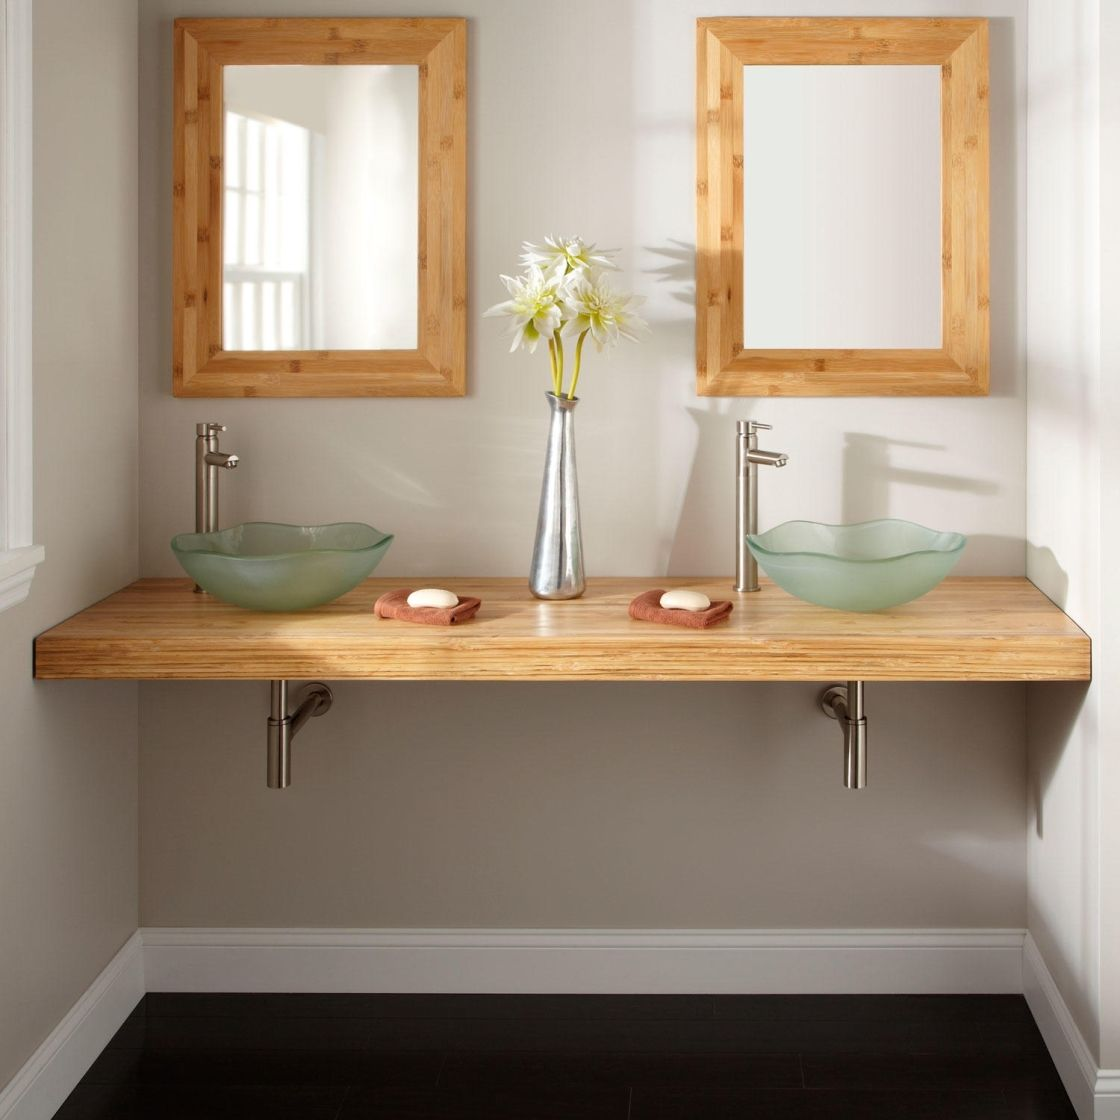 Diy Custom Floating Bathroom Vanity Design In Solid Natural